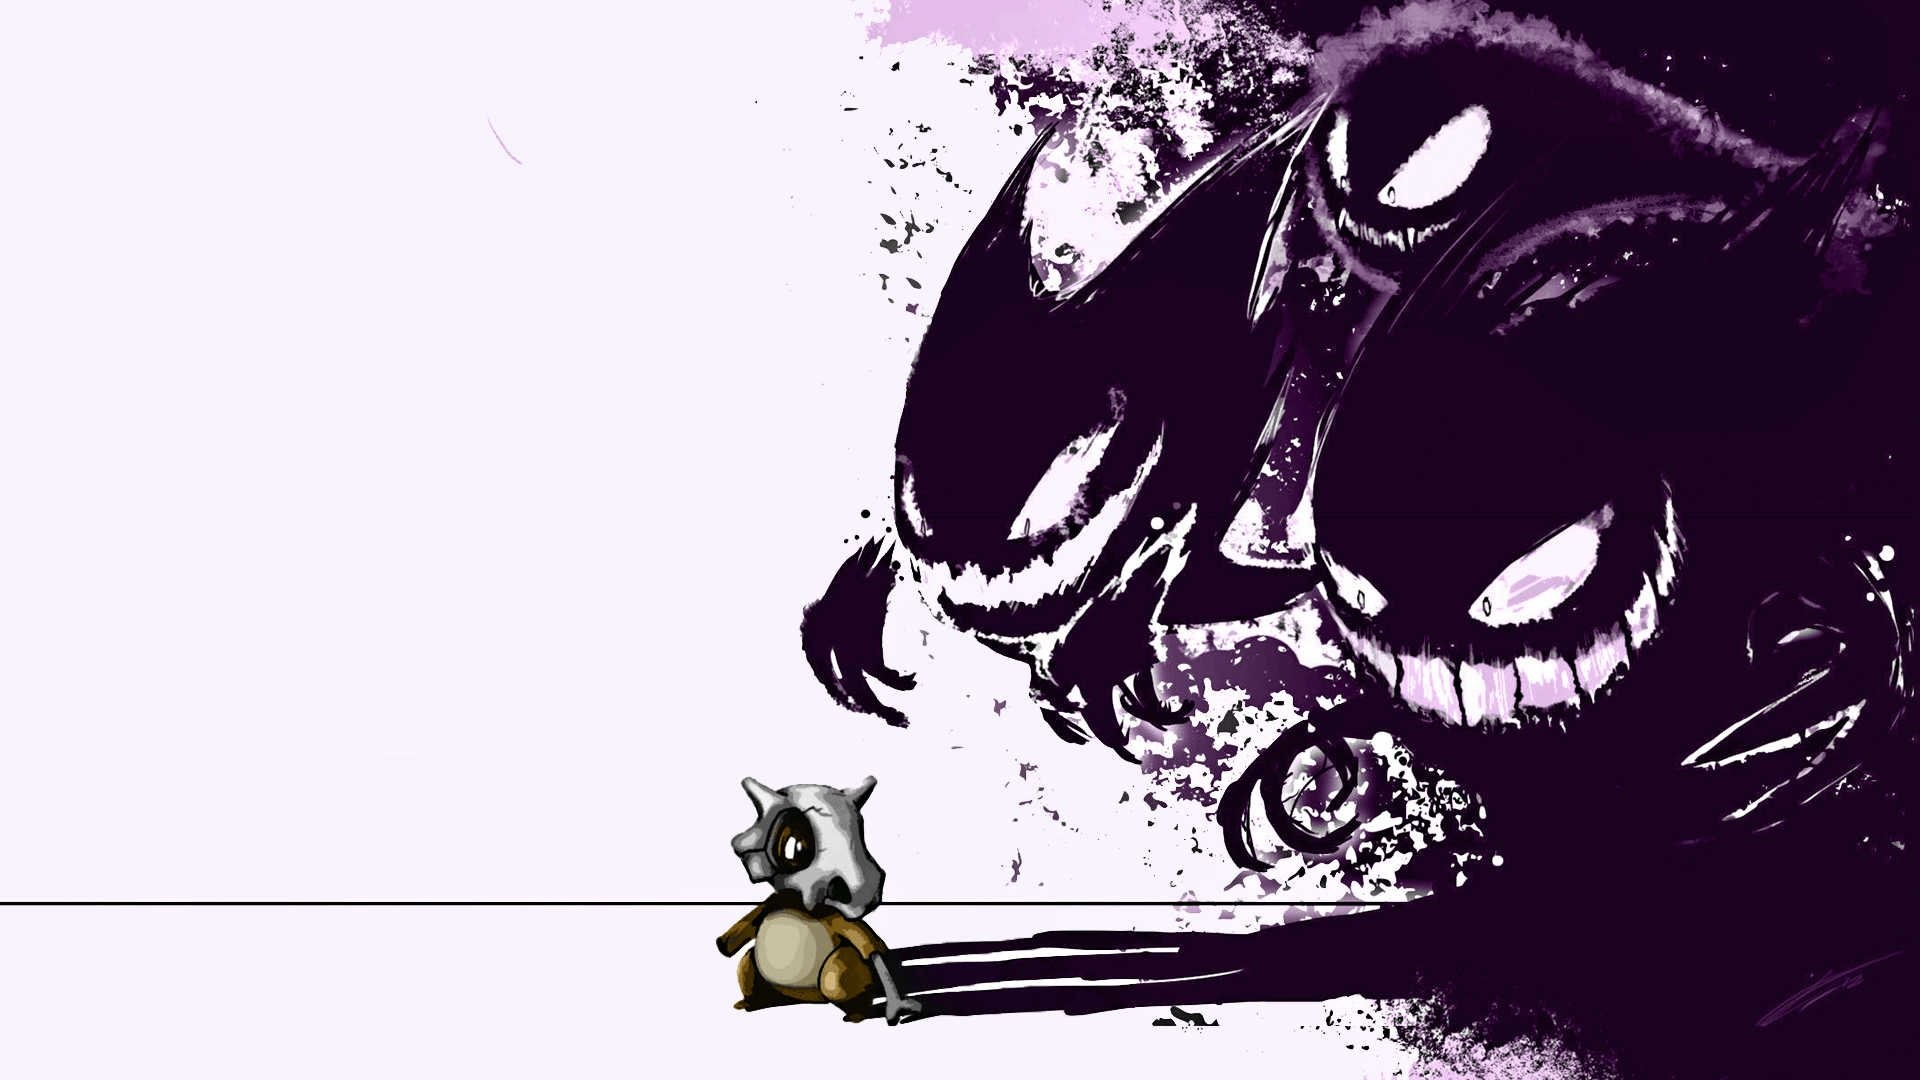 Ghost Pokemon Wallpaper by PandaSexBox on DeviantArt | HD Wallpapers |  Pinterest | Ghost pokemon, Pokémon and 3d wallpaper